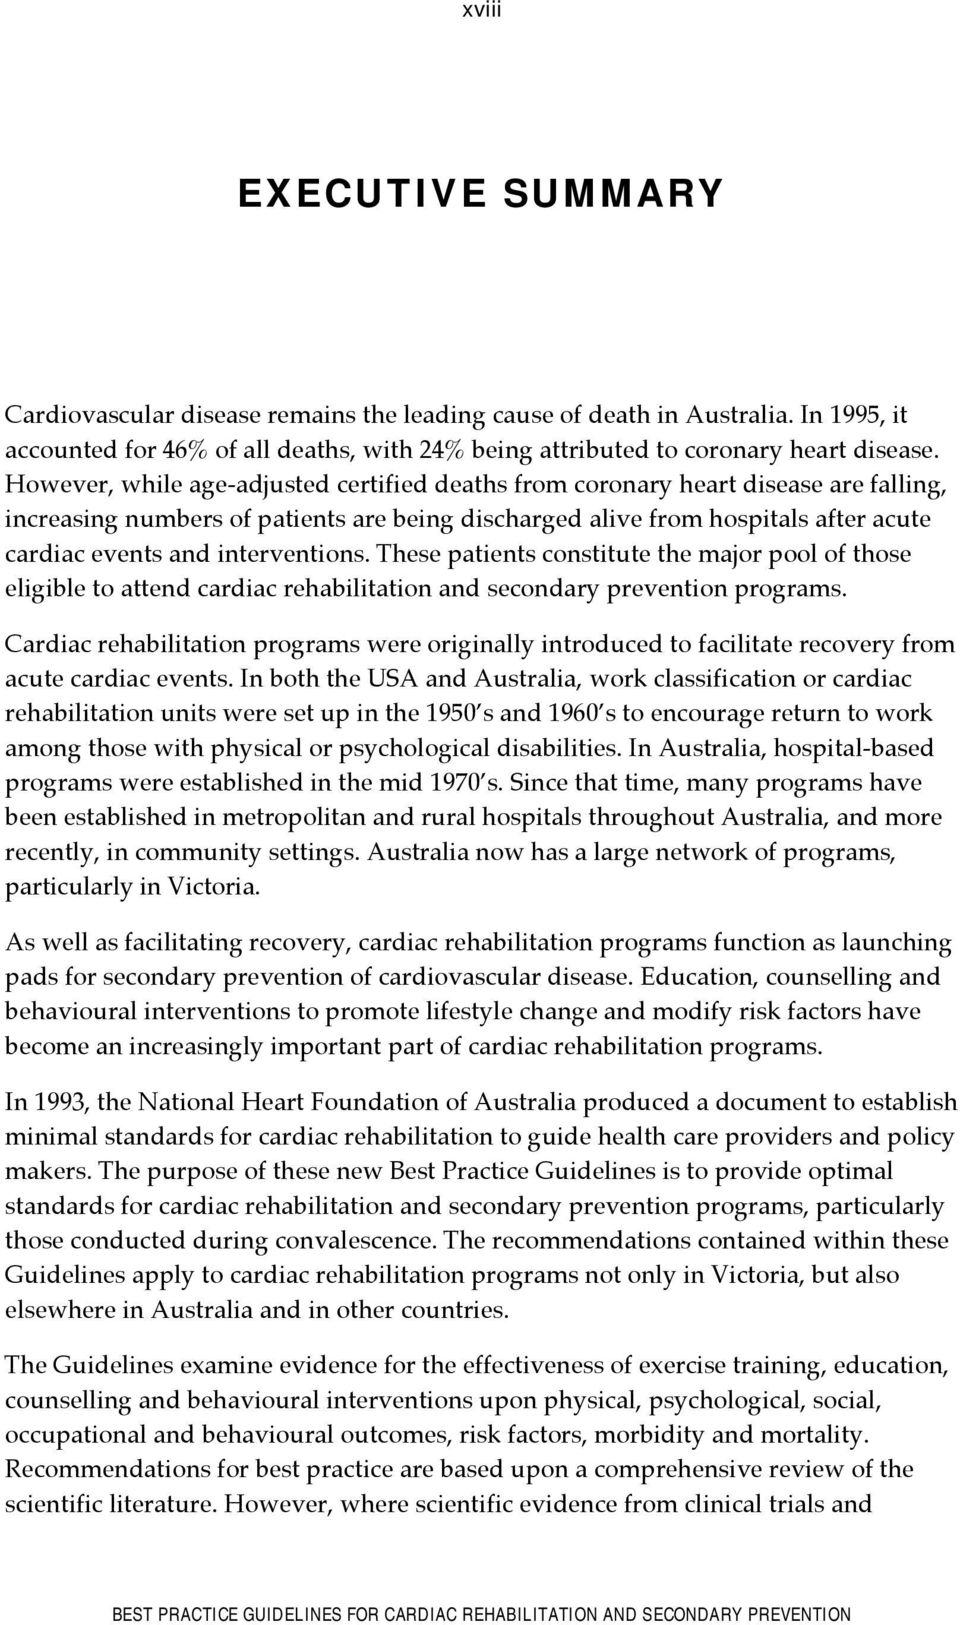 interventions. These patients constitute the major pool of those eligible to attend cardiac rehabilitation and secondary prevention programs.